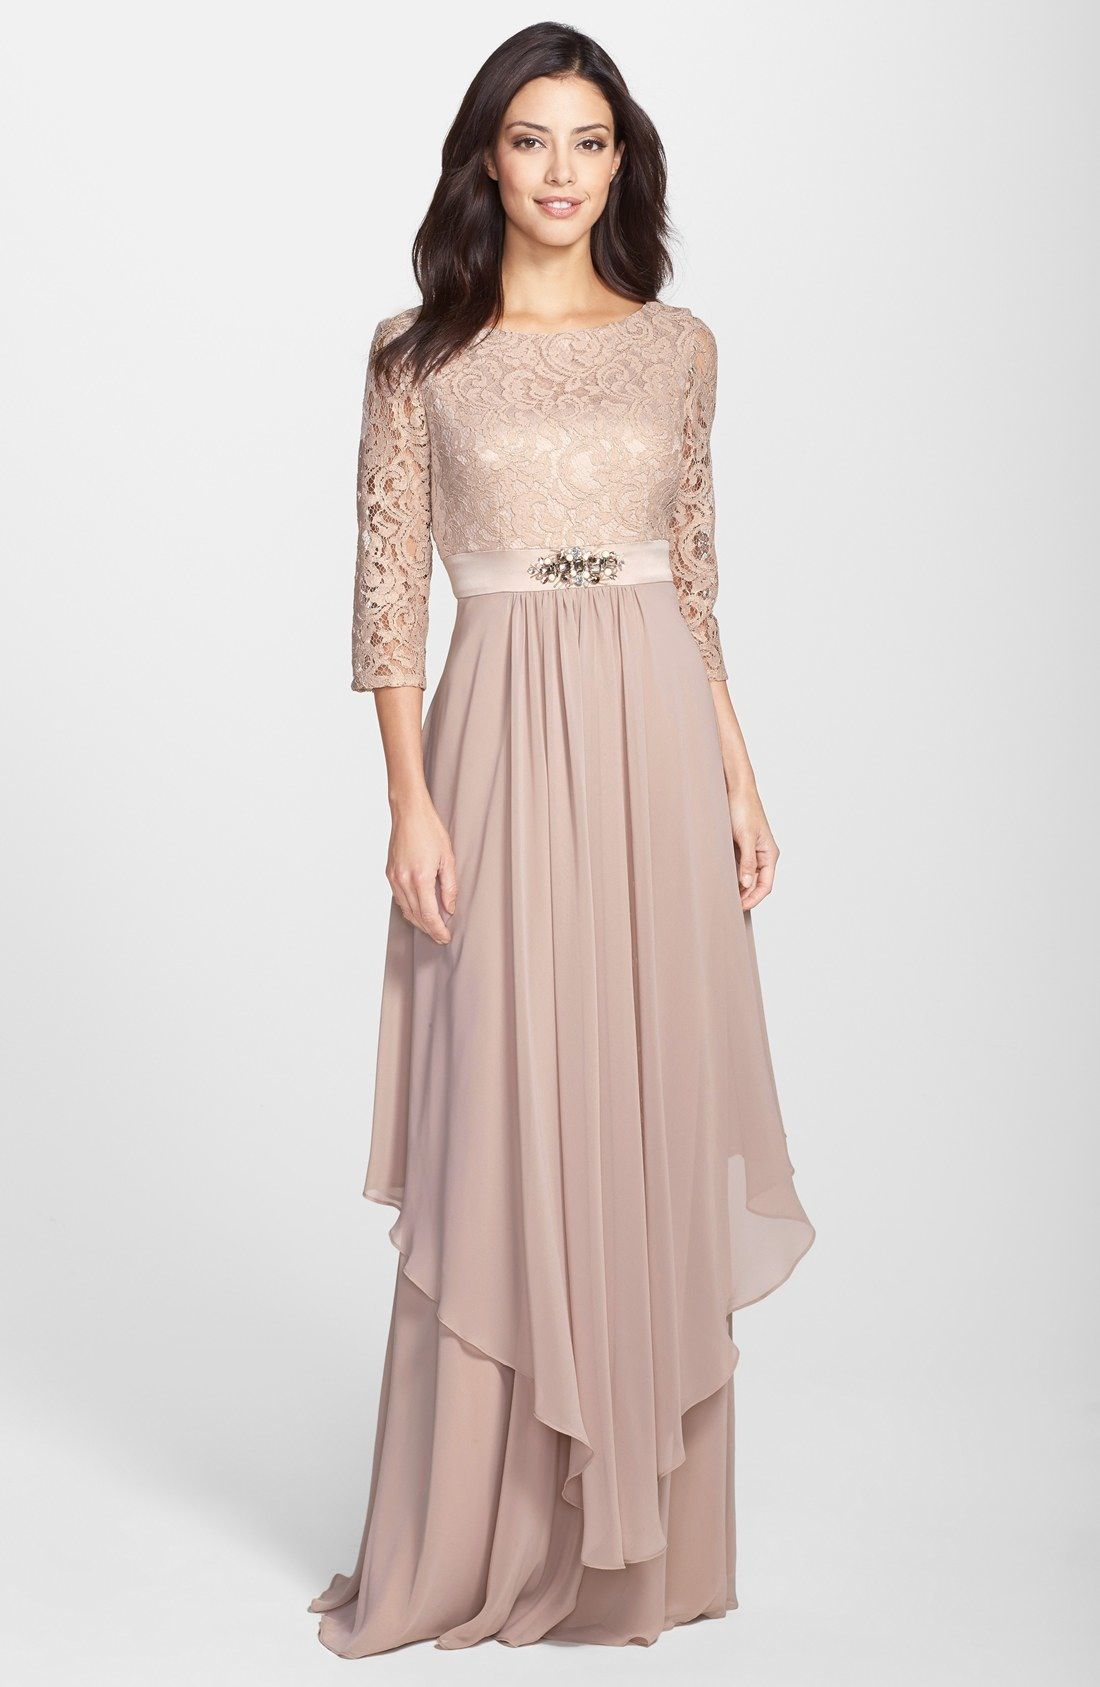 Eliza j embellished lace wedding ideas pinterest lace chiffon